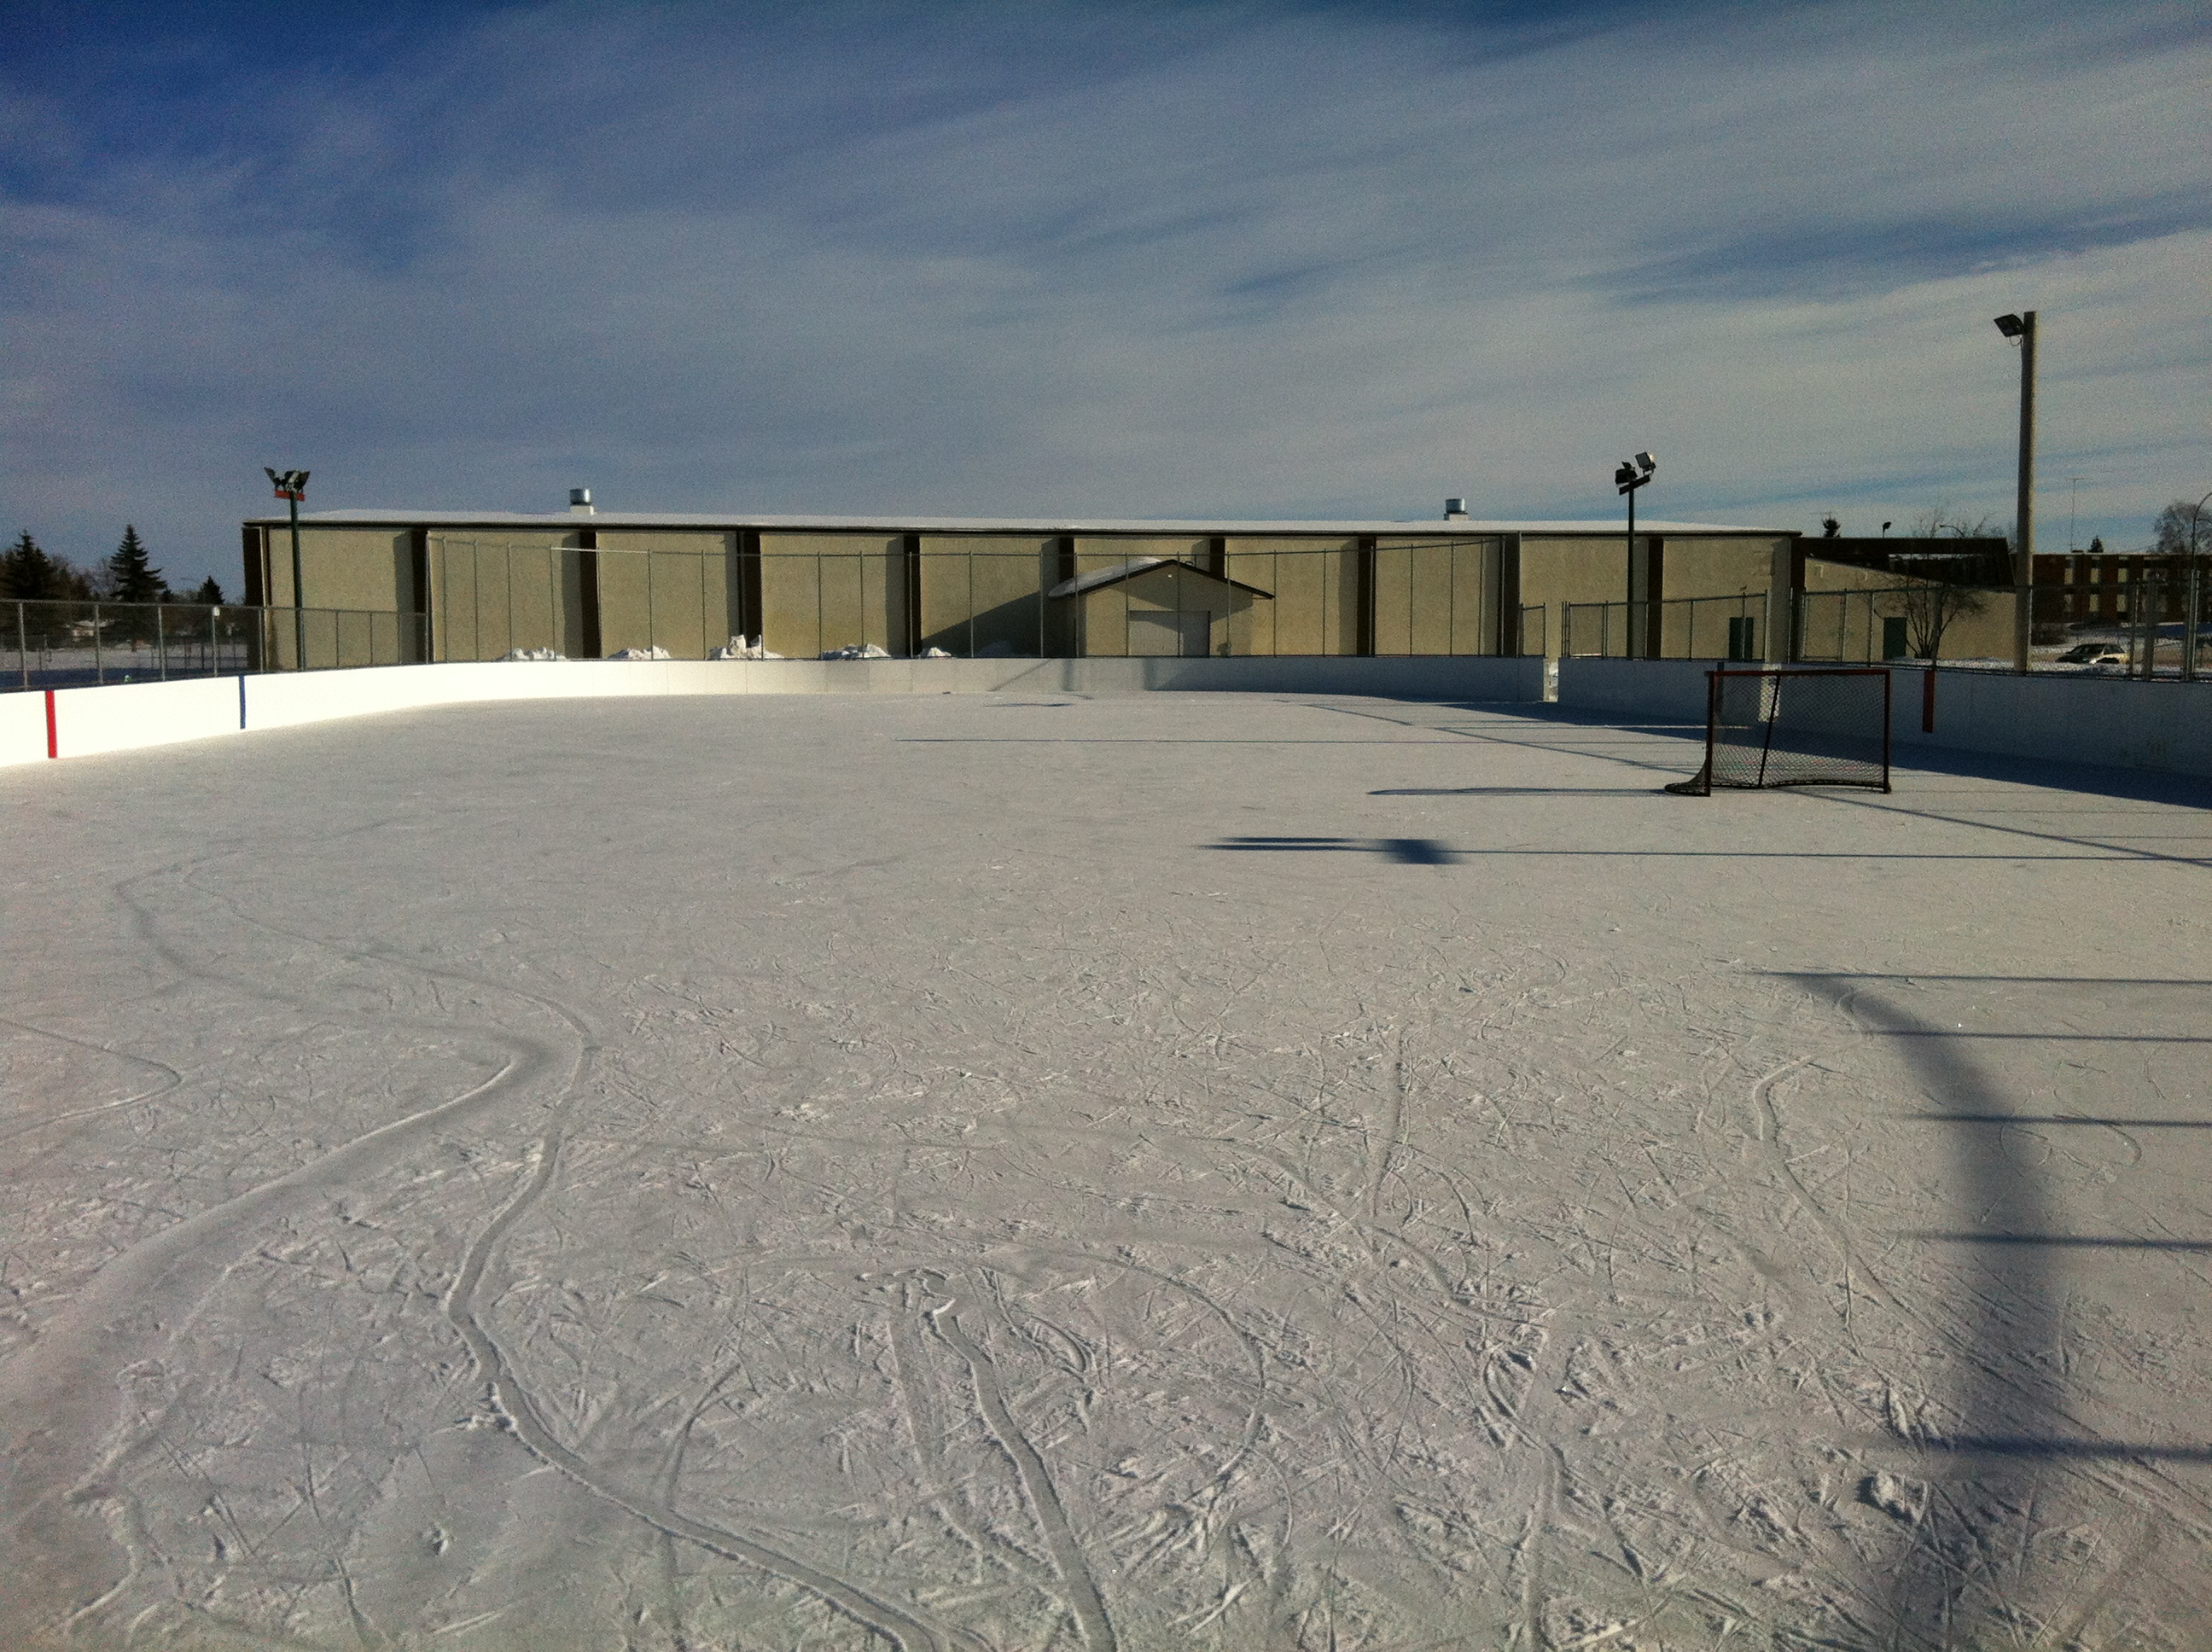 Cres Hts new outdoor rink 2010 (6).JPG